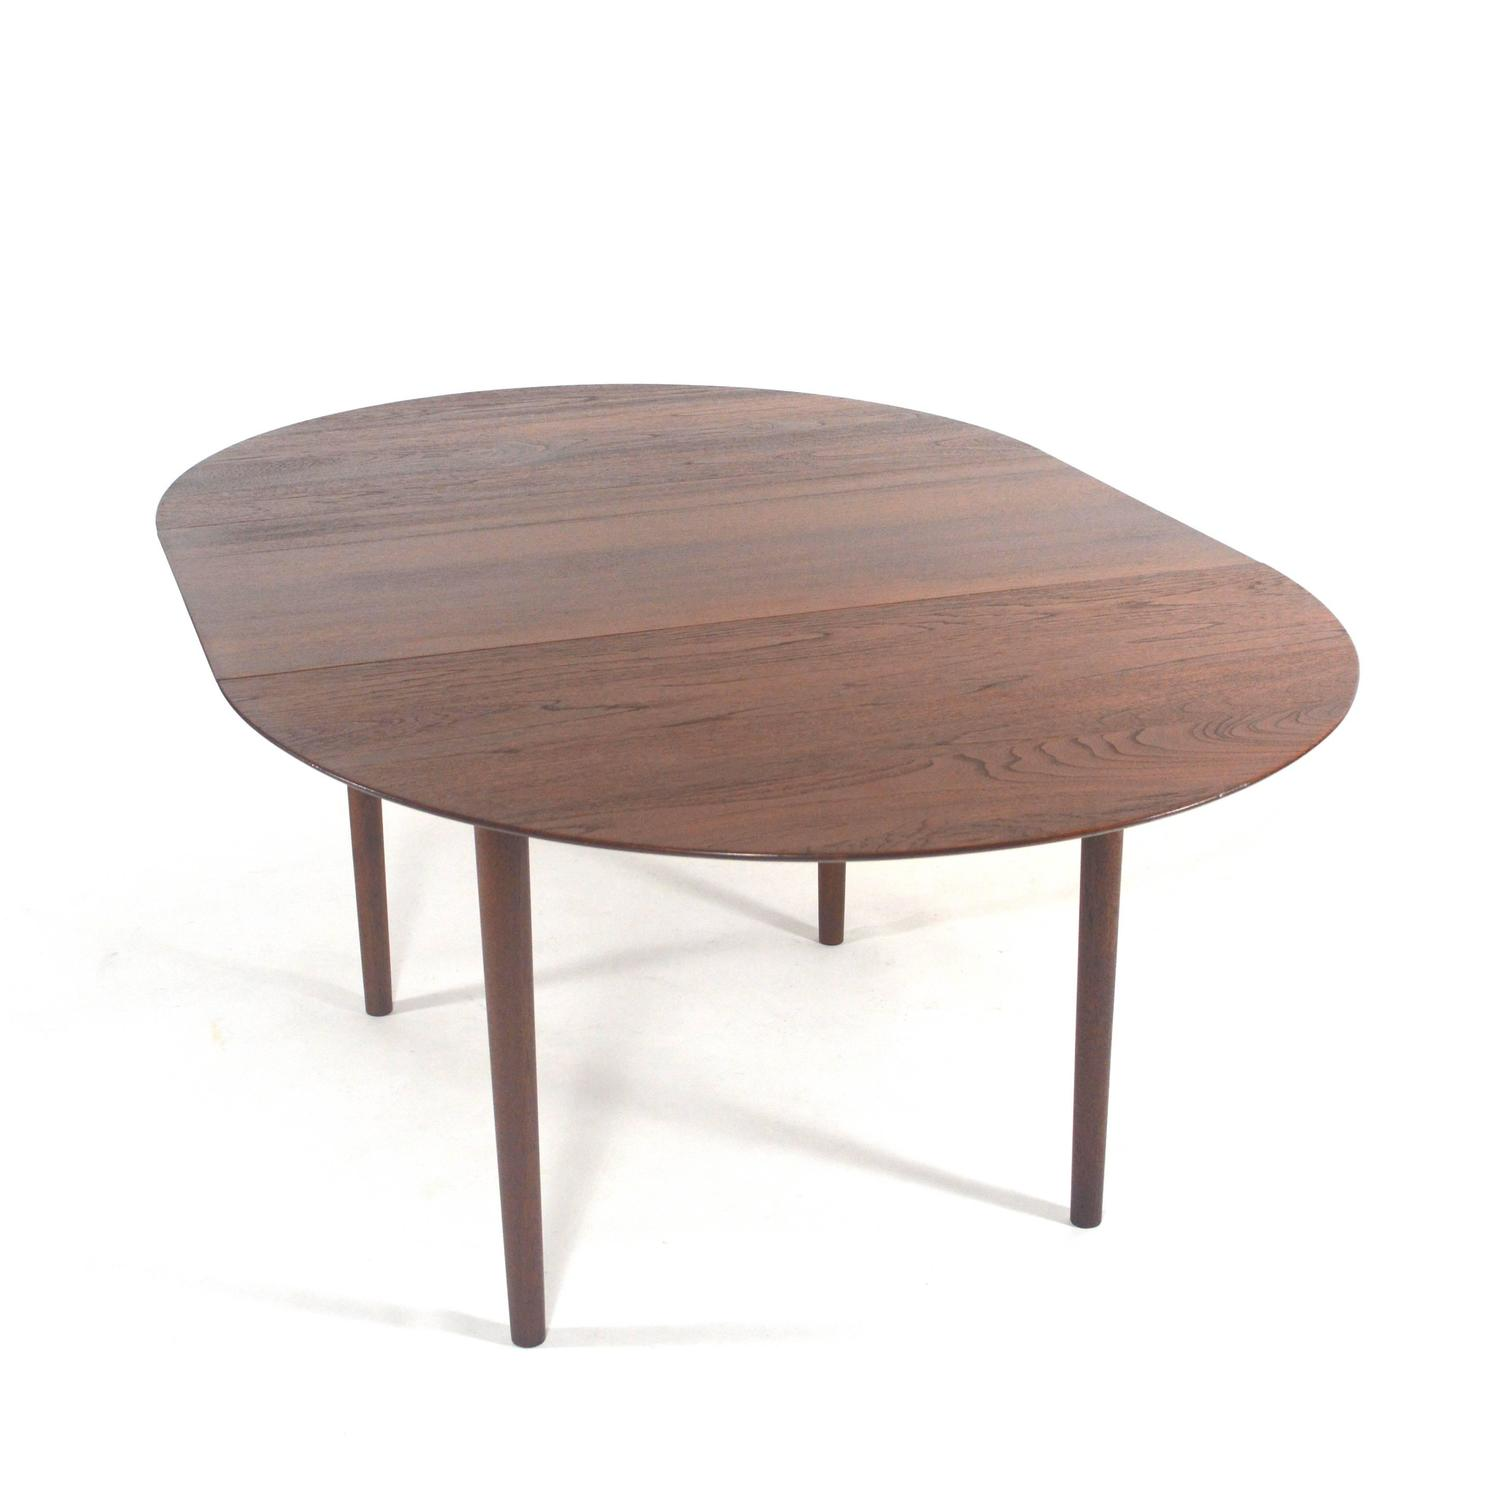 restored no 311 dining table by hvidt and m 248 lgaard nielsen denmark 1956 for sale at 1stdibs